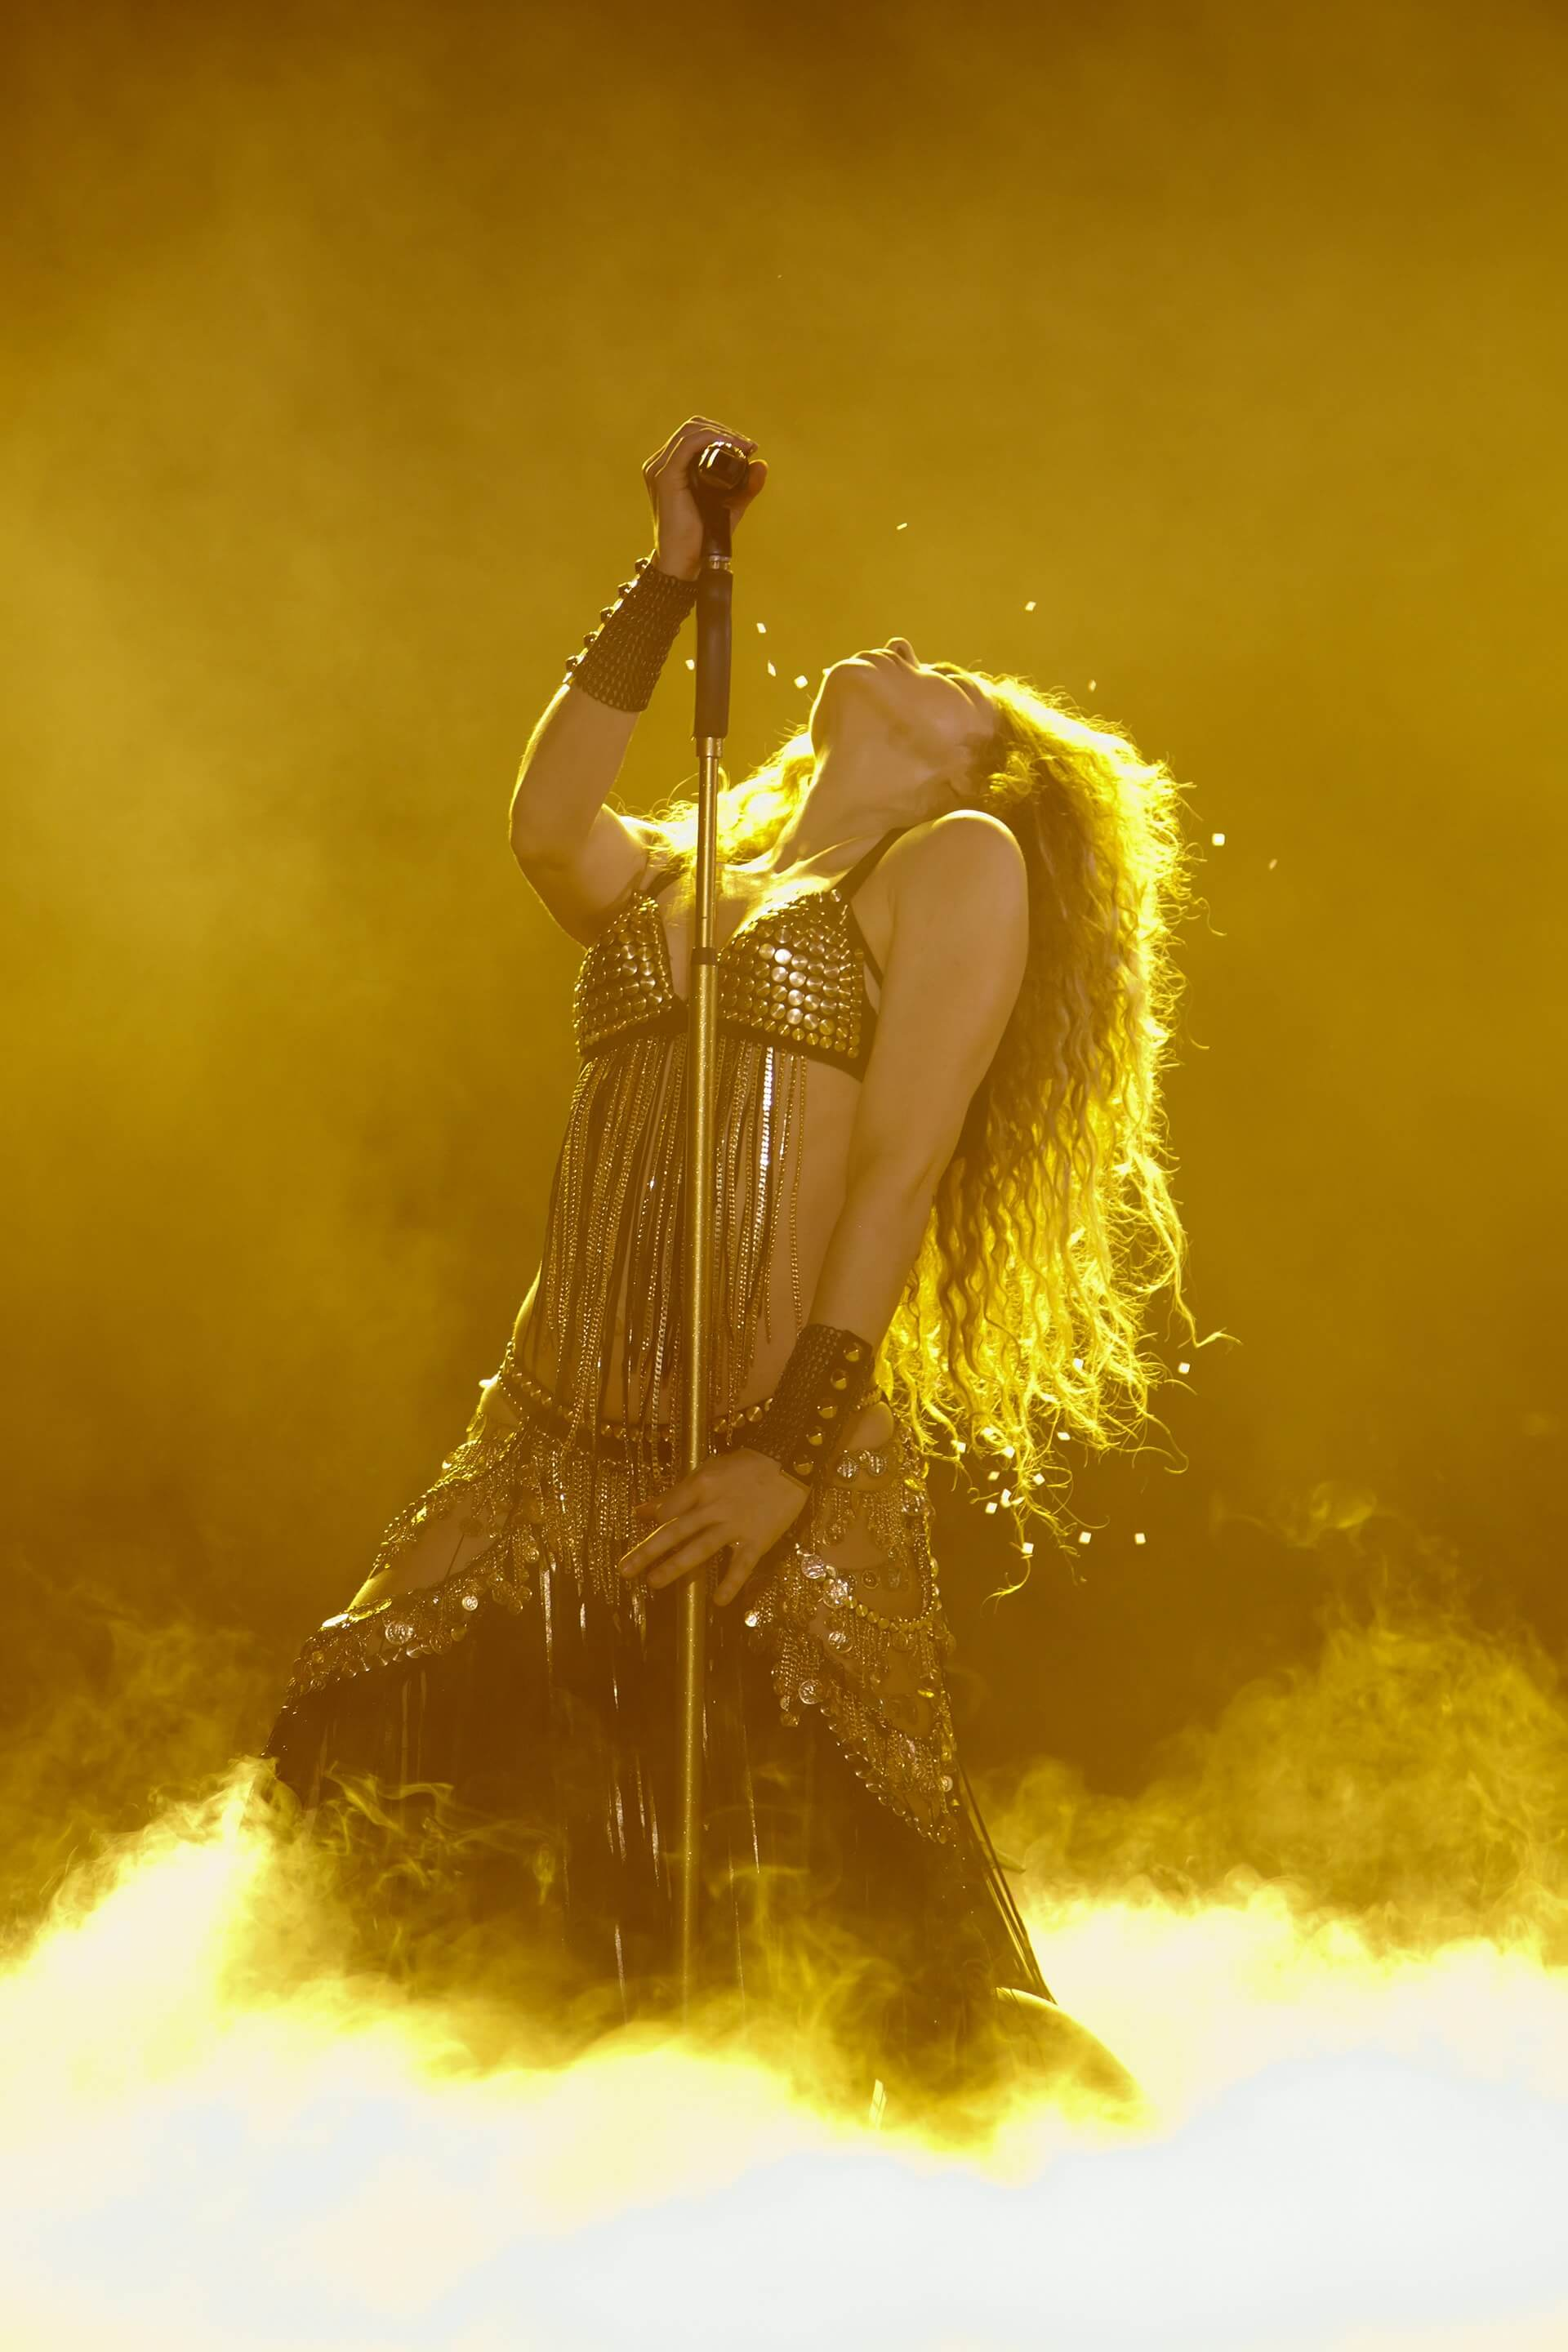 Image 1 of the Shakira En Concierto: El Dorado World Tour gallery